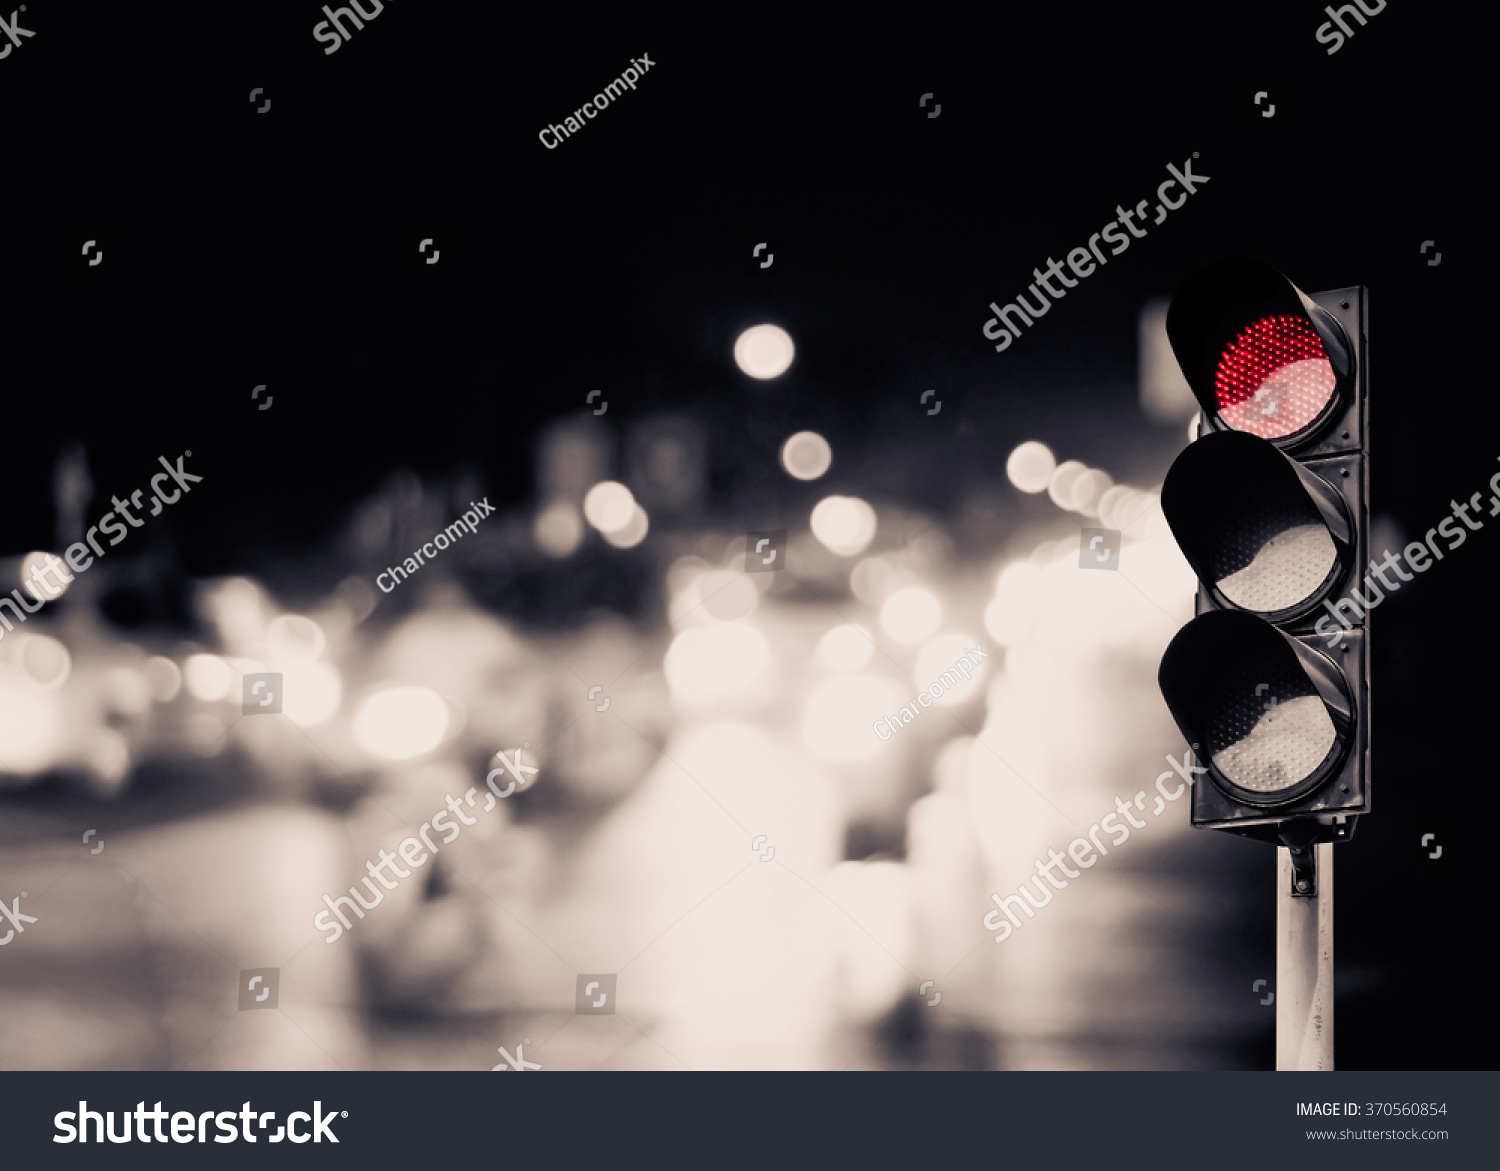 Red Traffic Light On Road Night Stock Photo 370560854 - Shutterstock for Traffic Light On Road At Night  45ifm